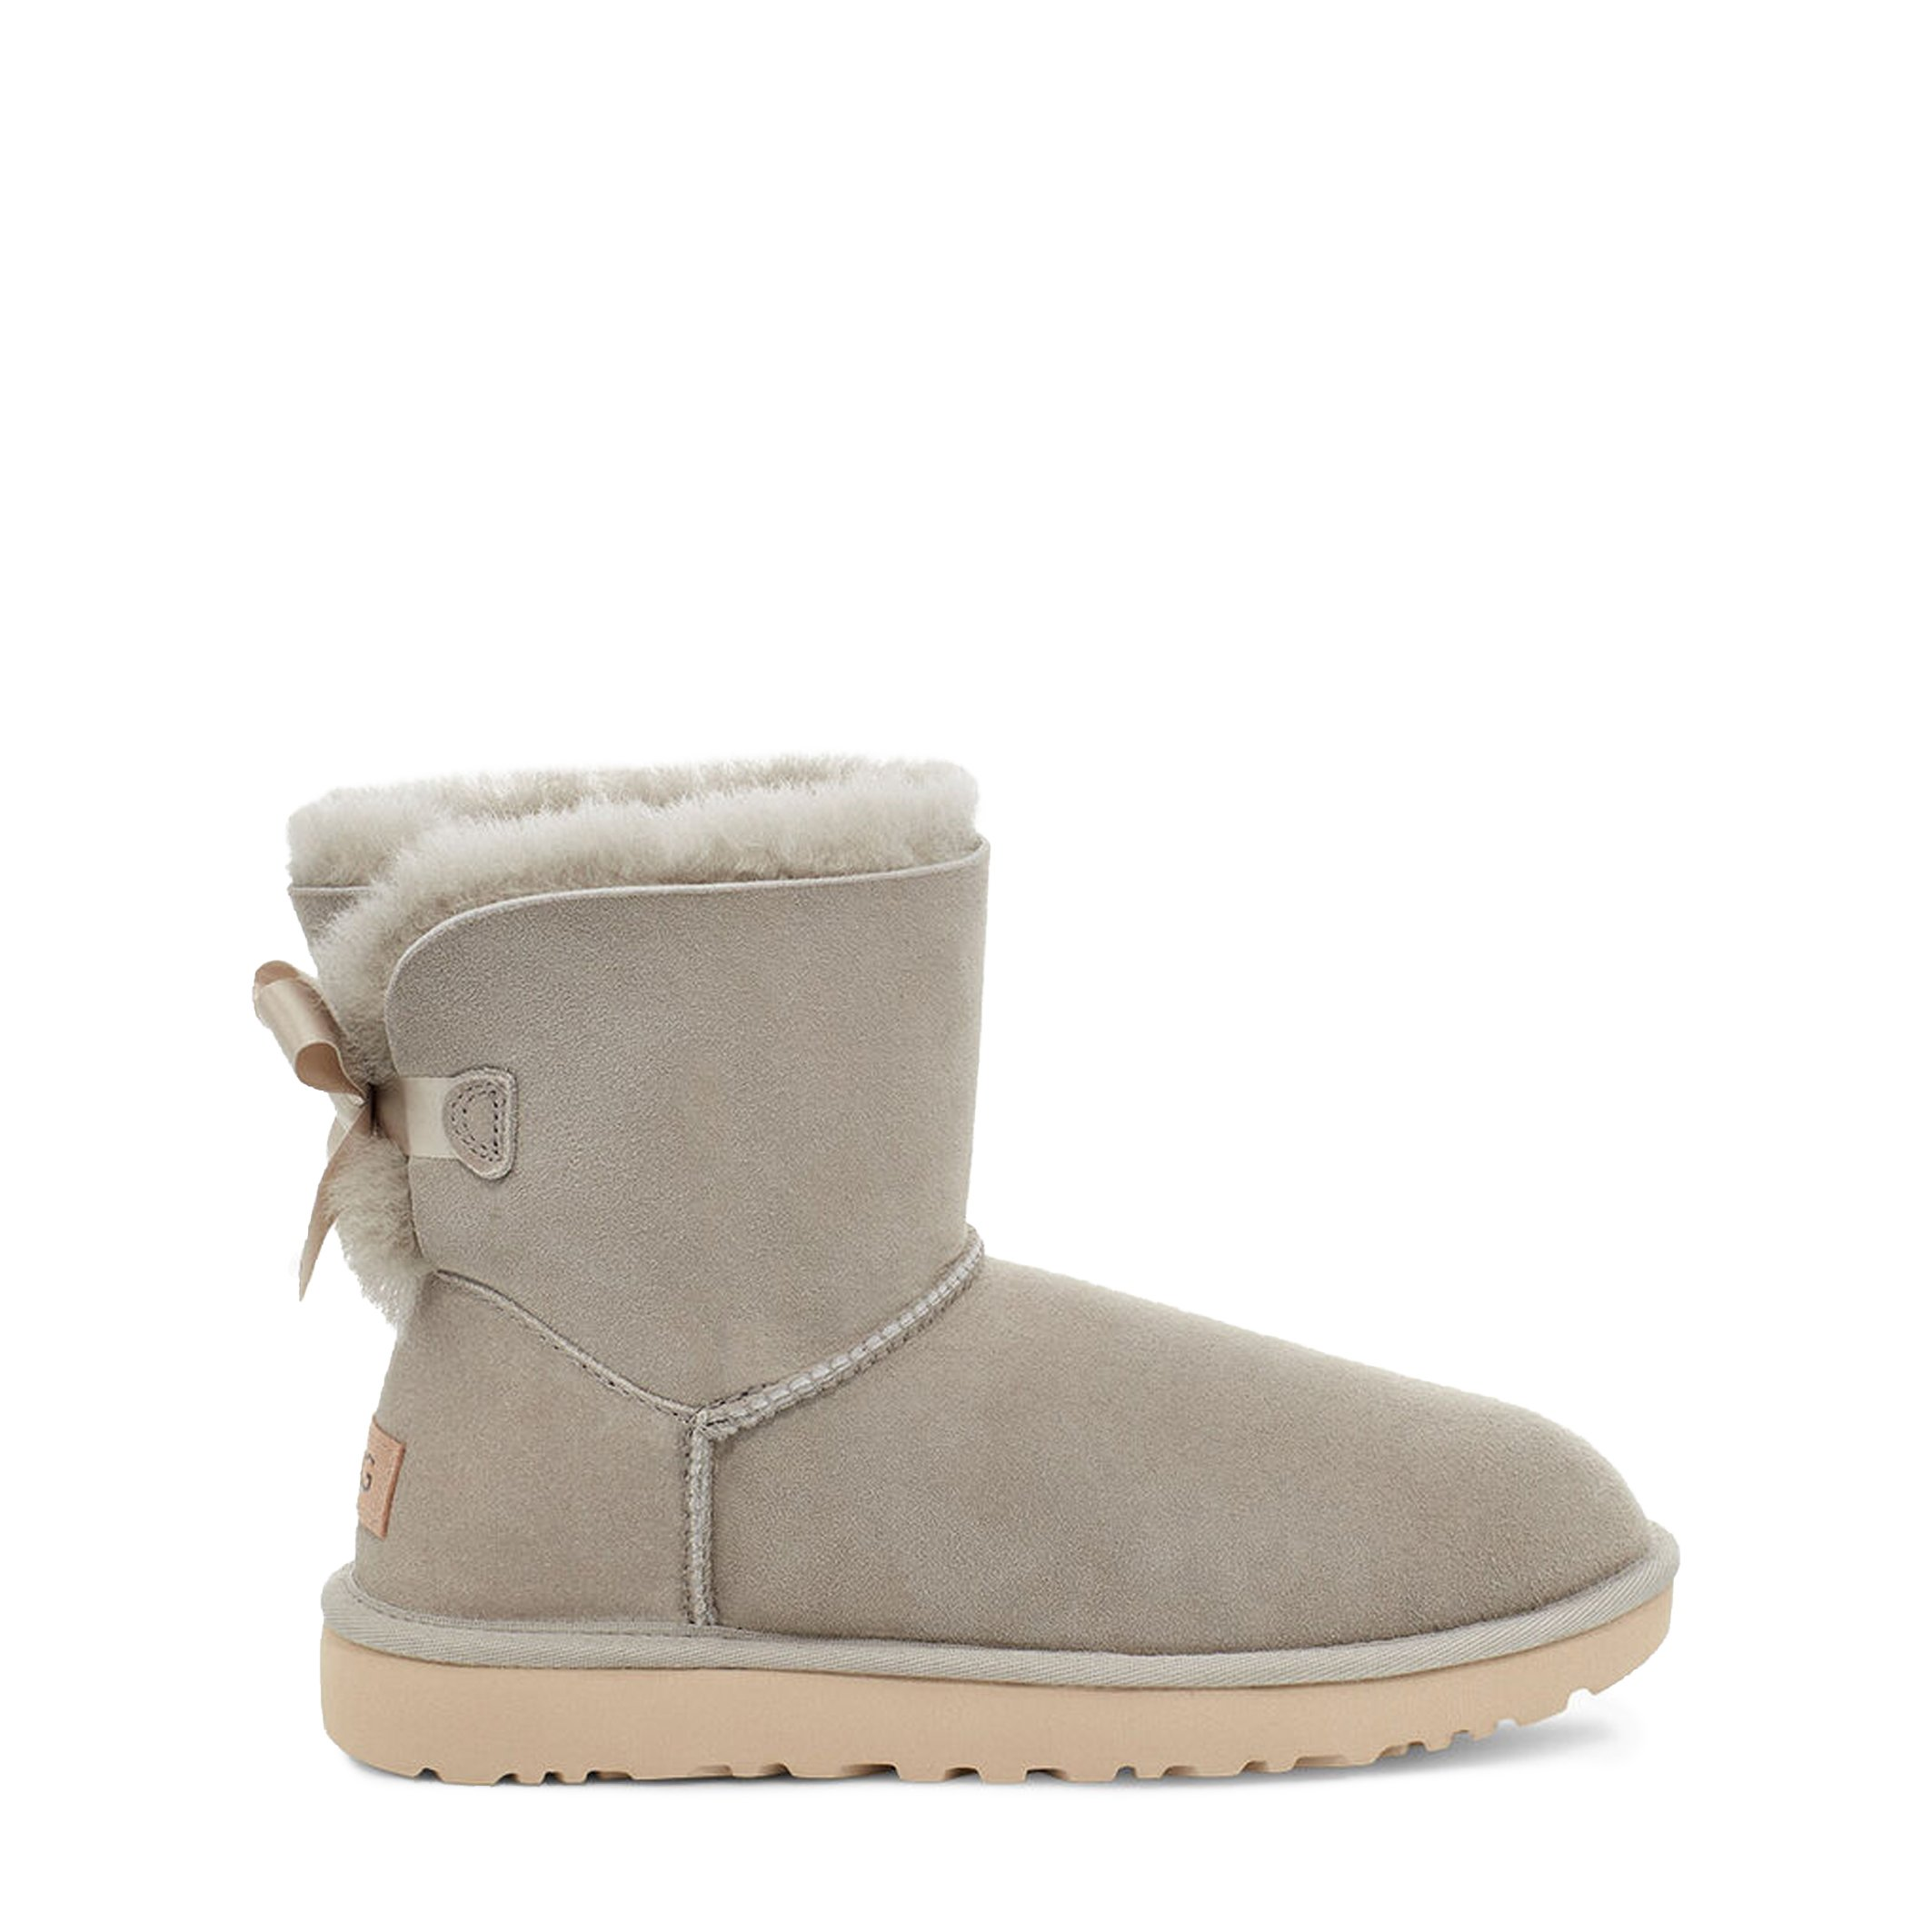 UGG Women's Ankle Boot Various Colours 1016501 - grey-1 EU 36